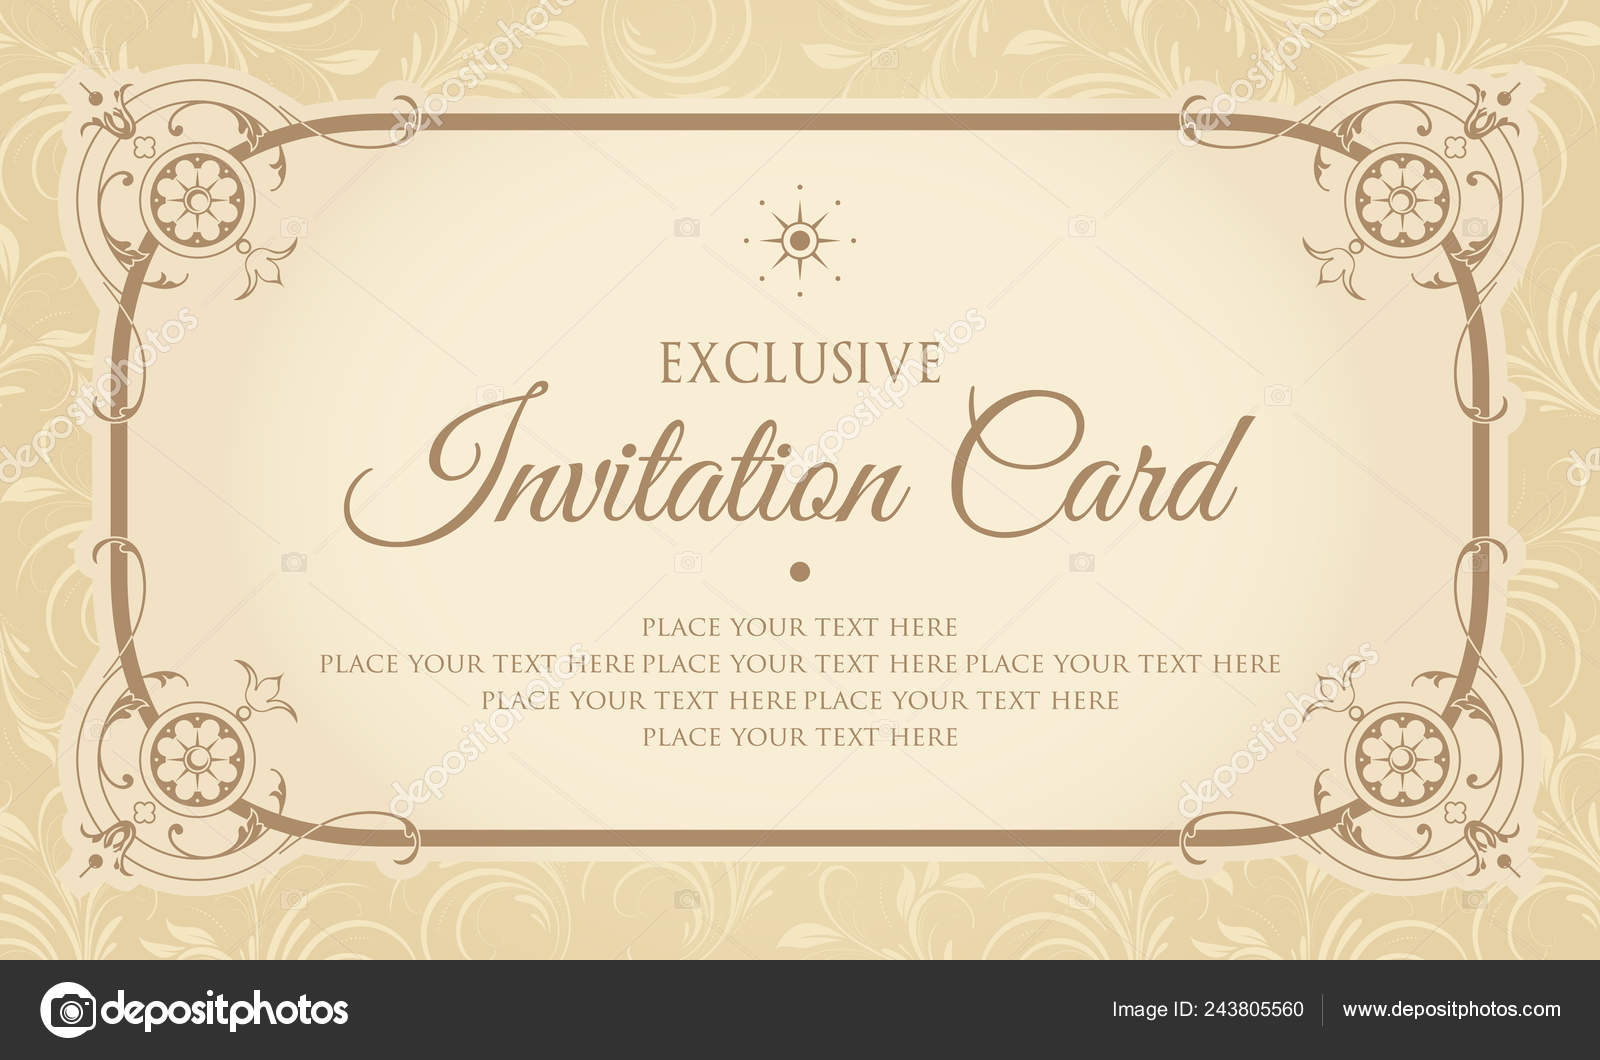 Exclusive Invitation Card Design Vintage Style Stock